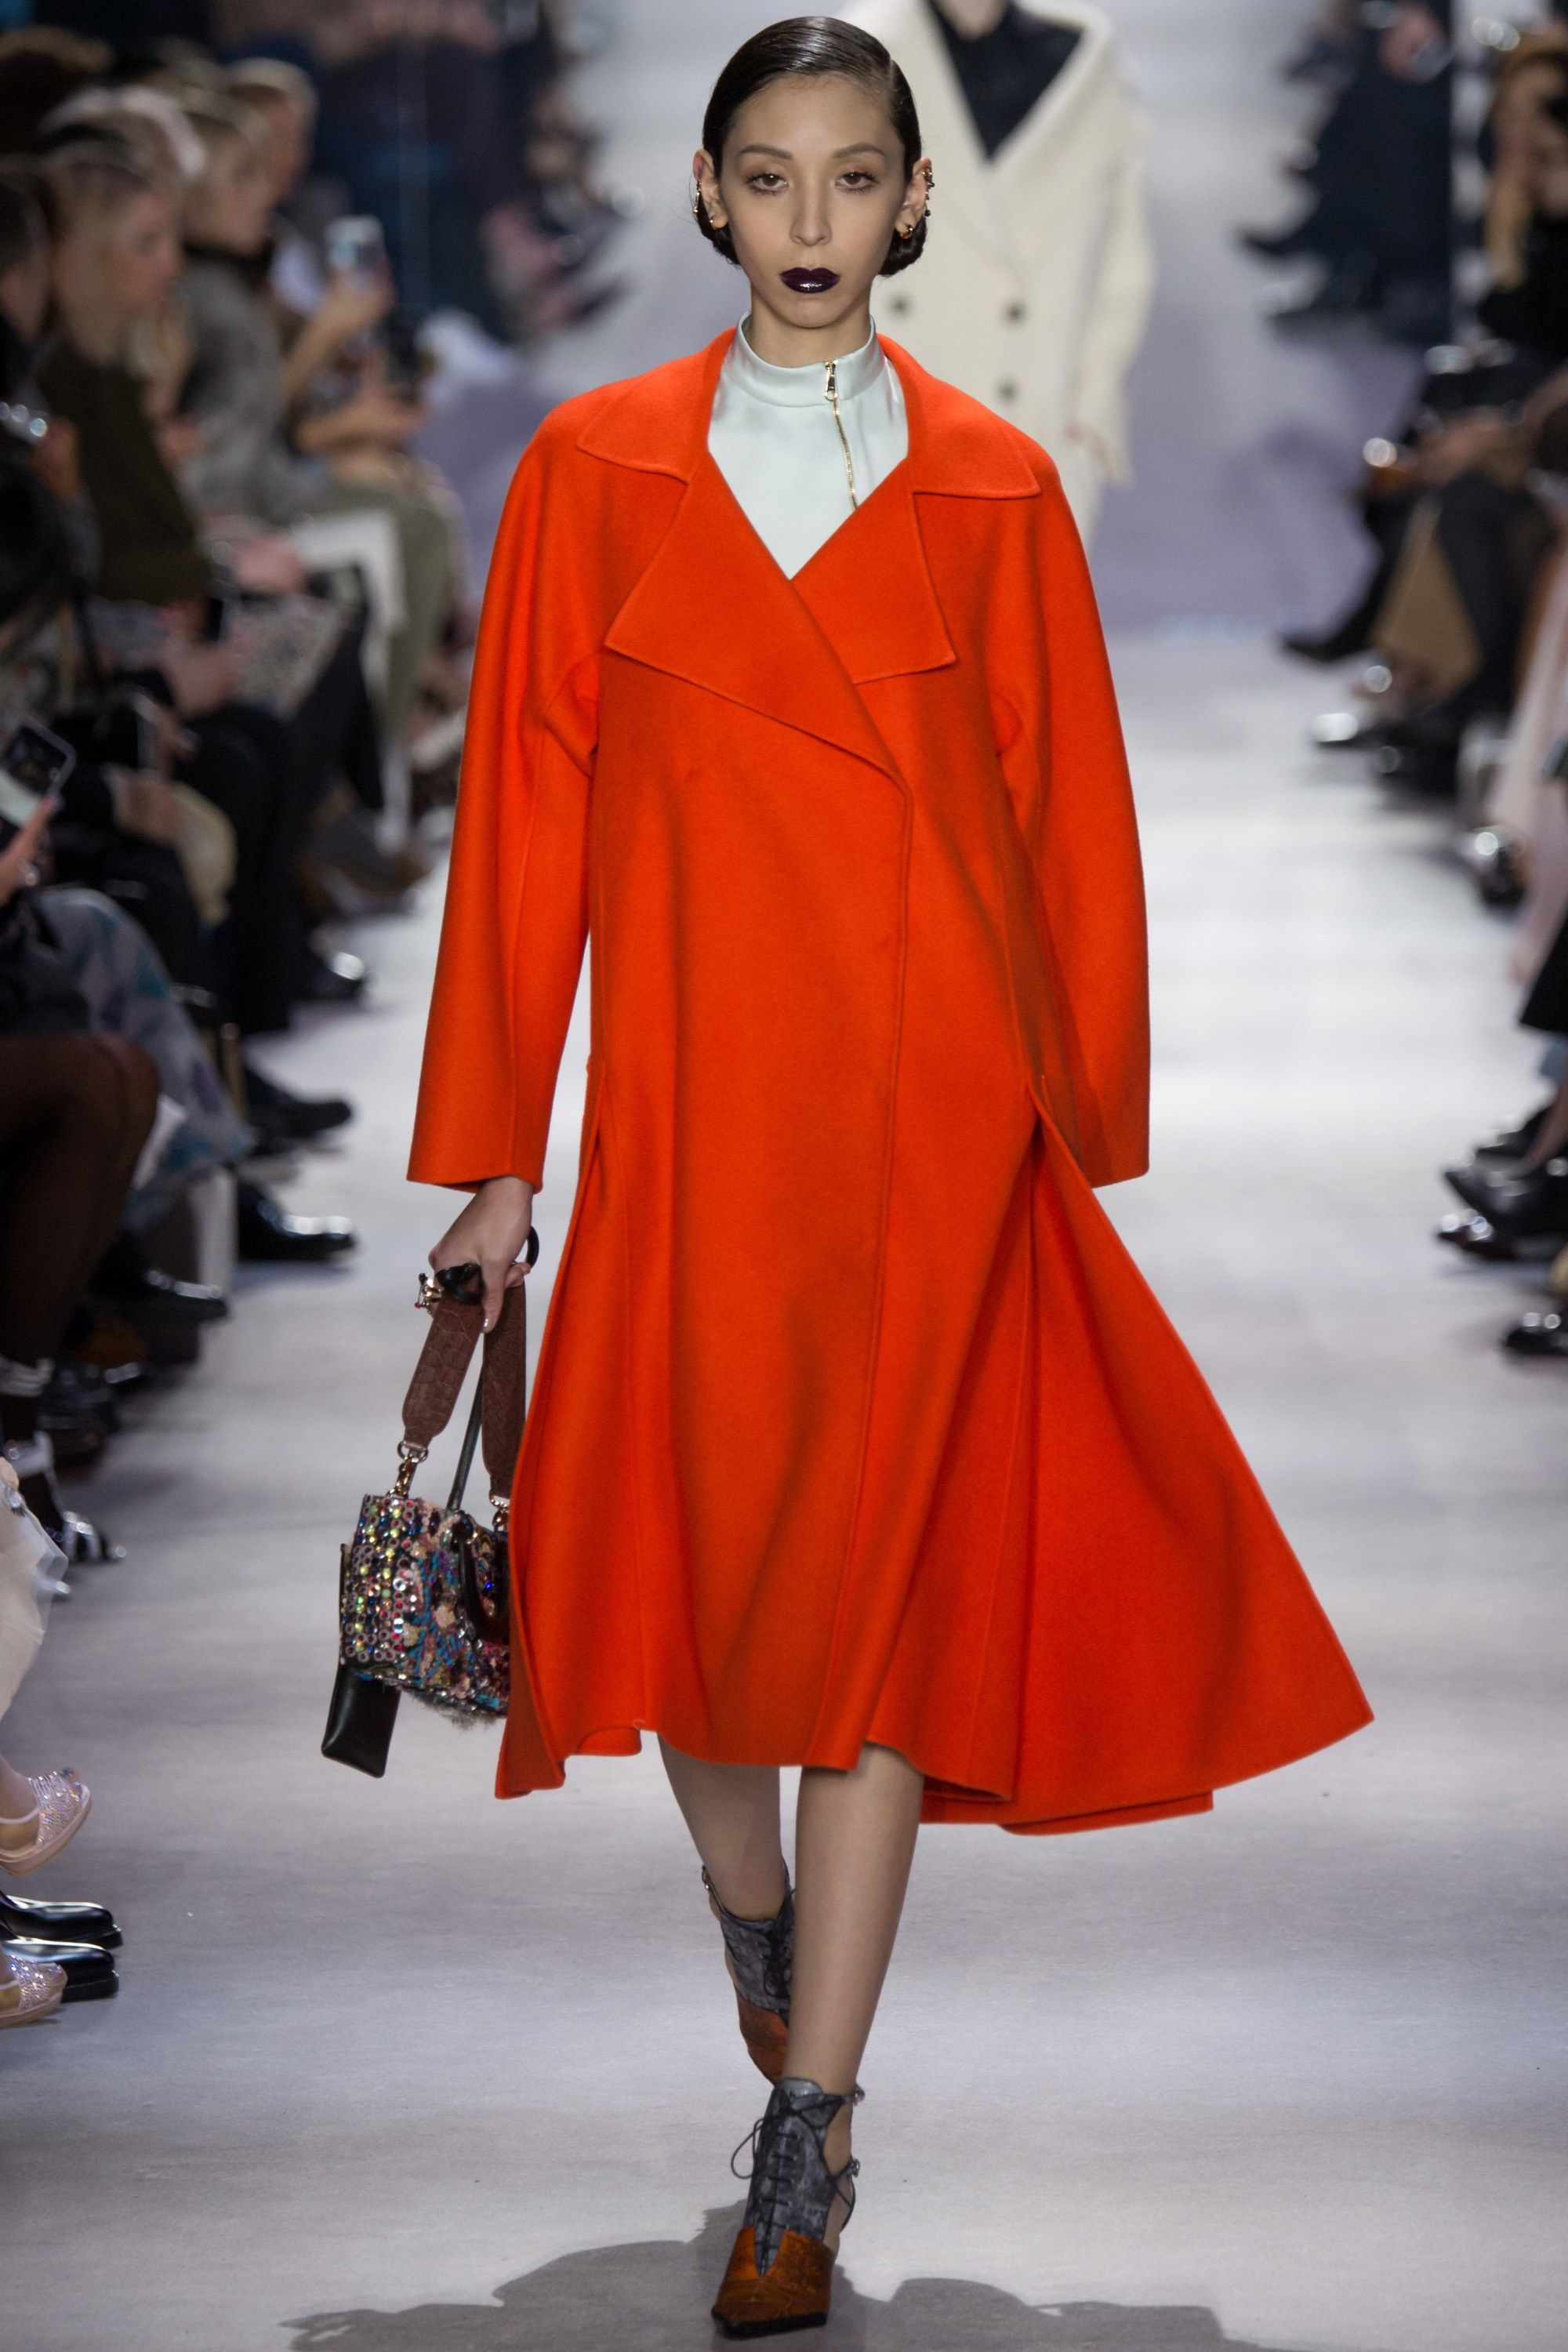 Christian Dior Fall 2016 Ready-to-Wear Collection Photos - Vogue